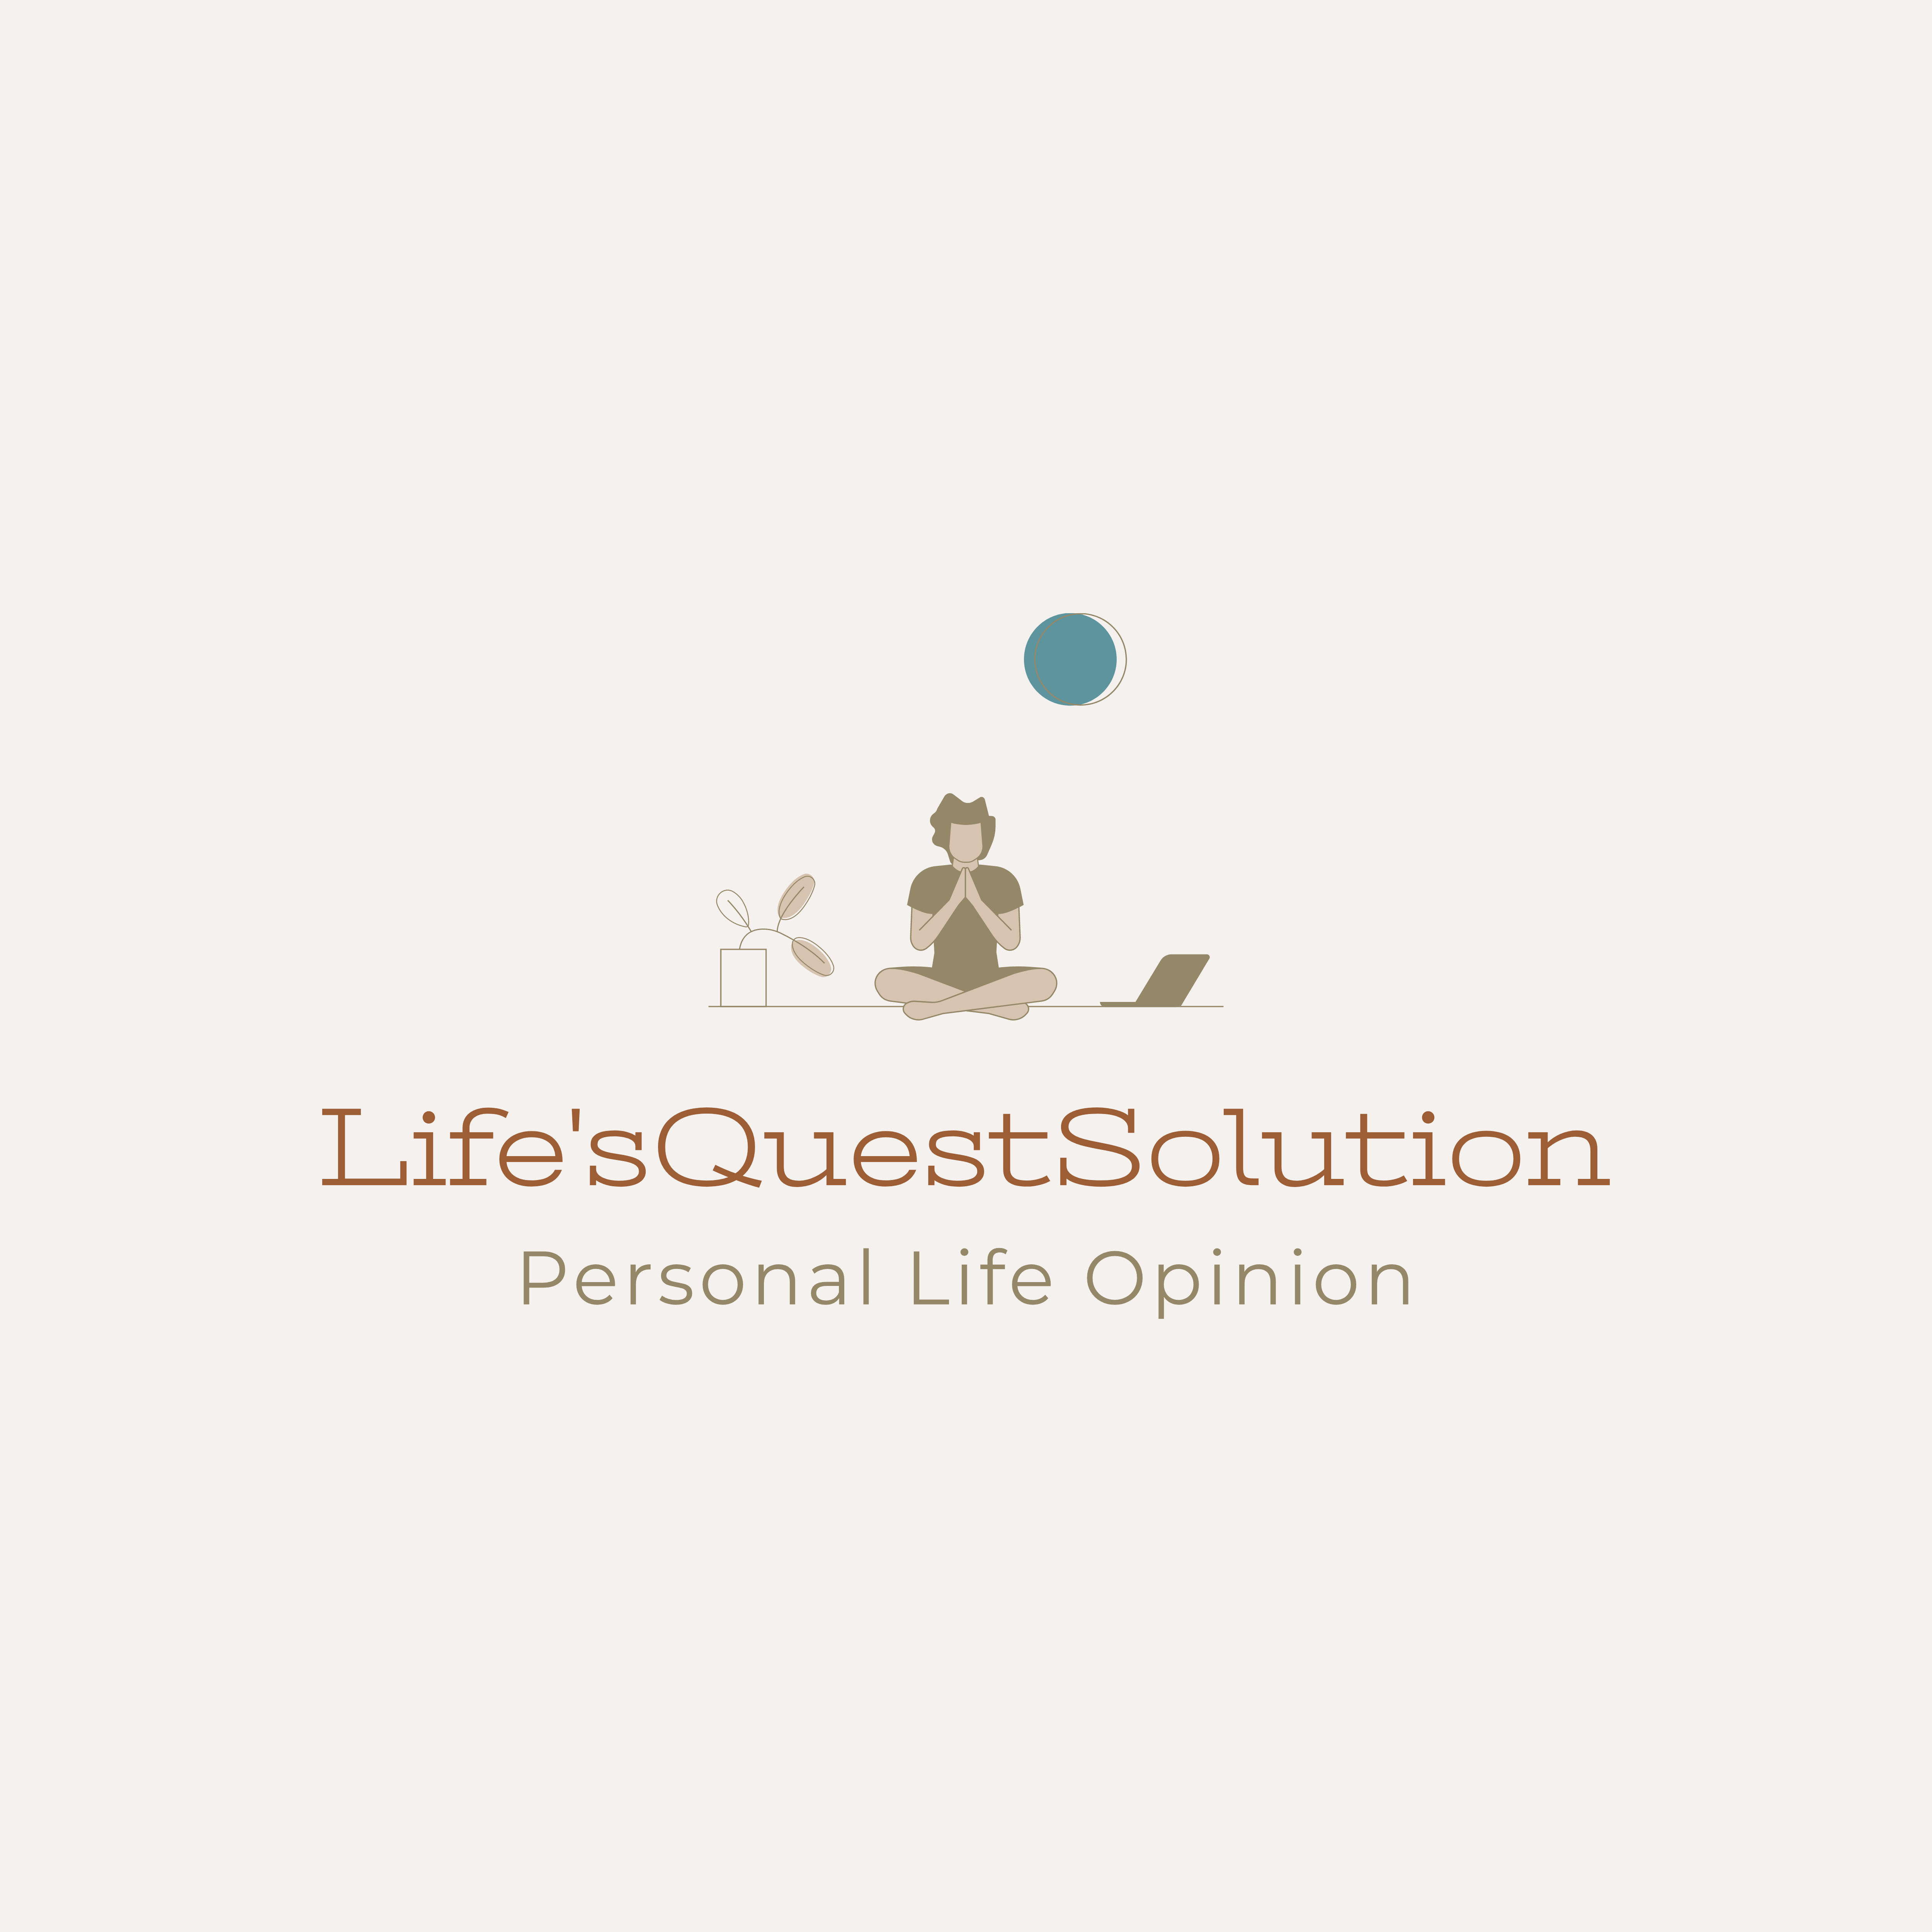 Life'sQuestSolution Logo